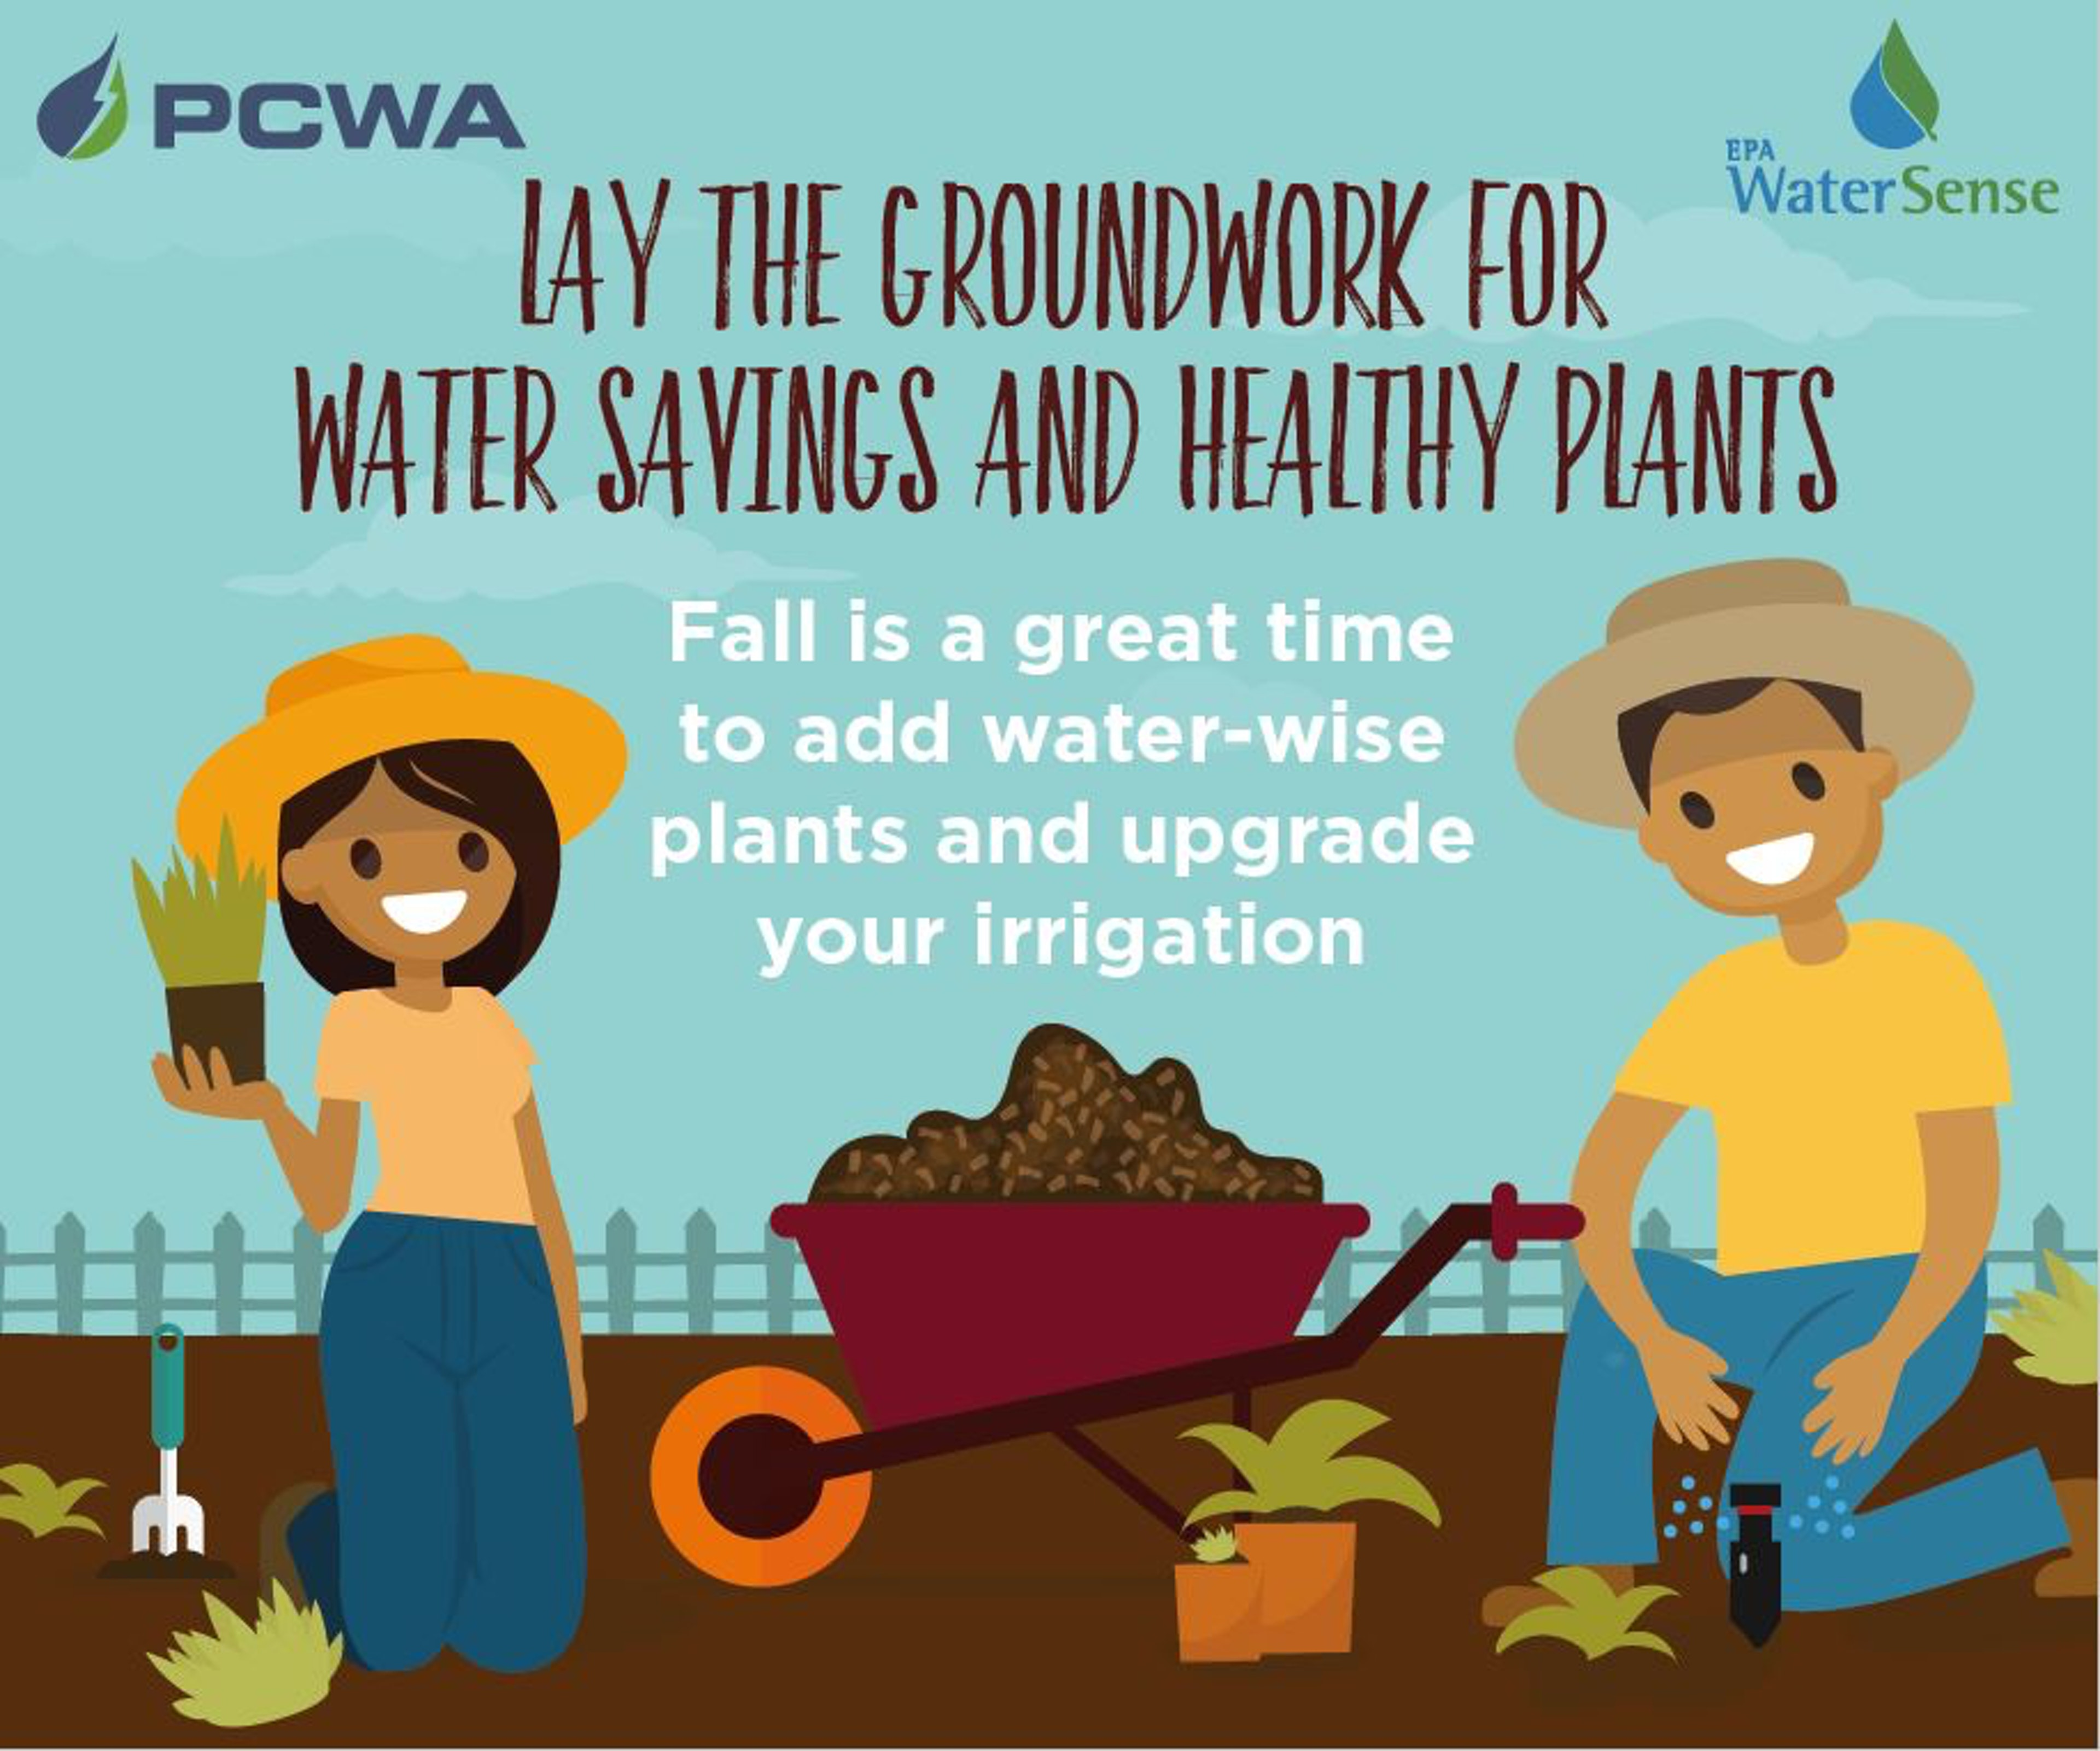 Lay the ground work for water saving and healthy plants. Fall is a great time to add water-wise plants and upgrade your irrigation.